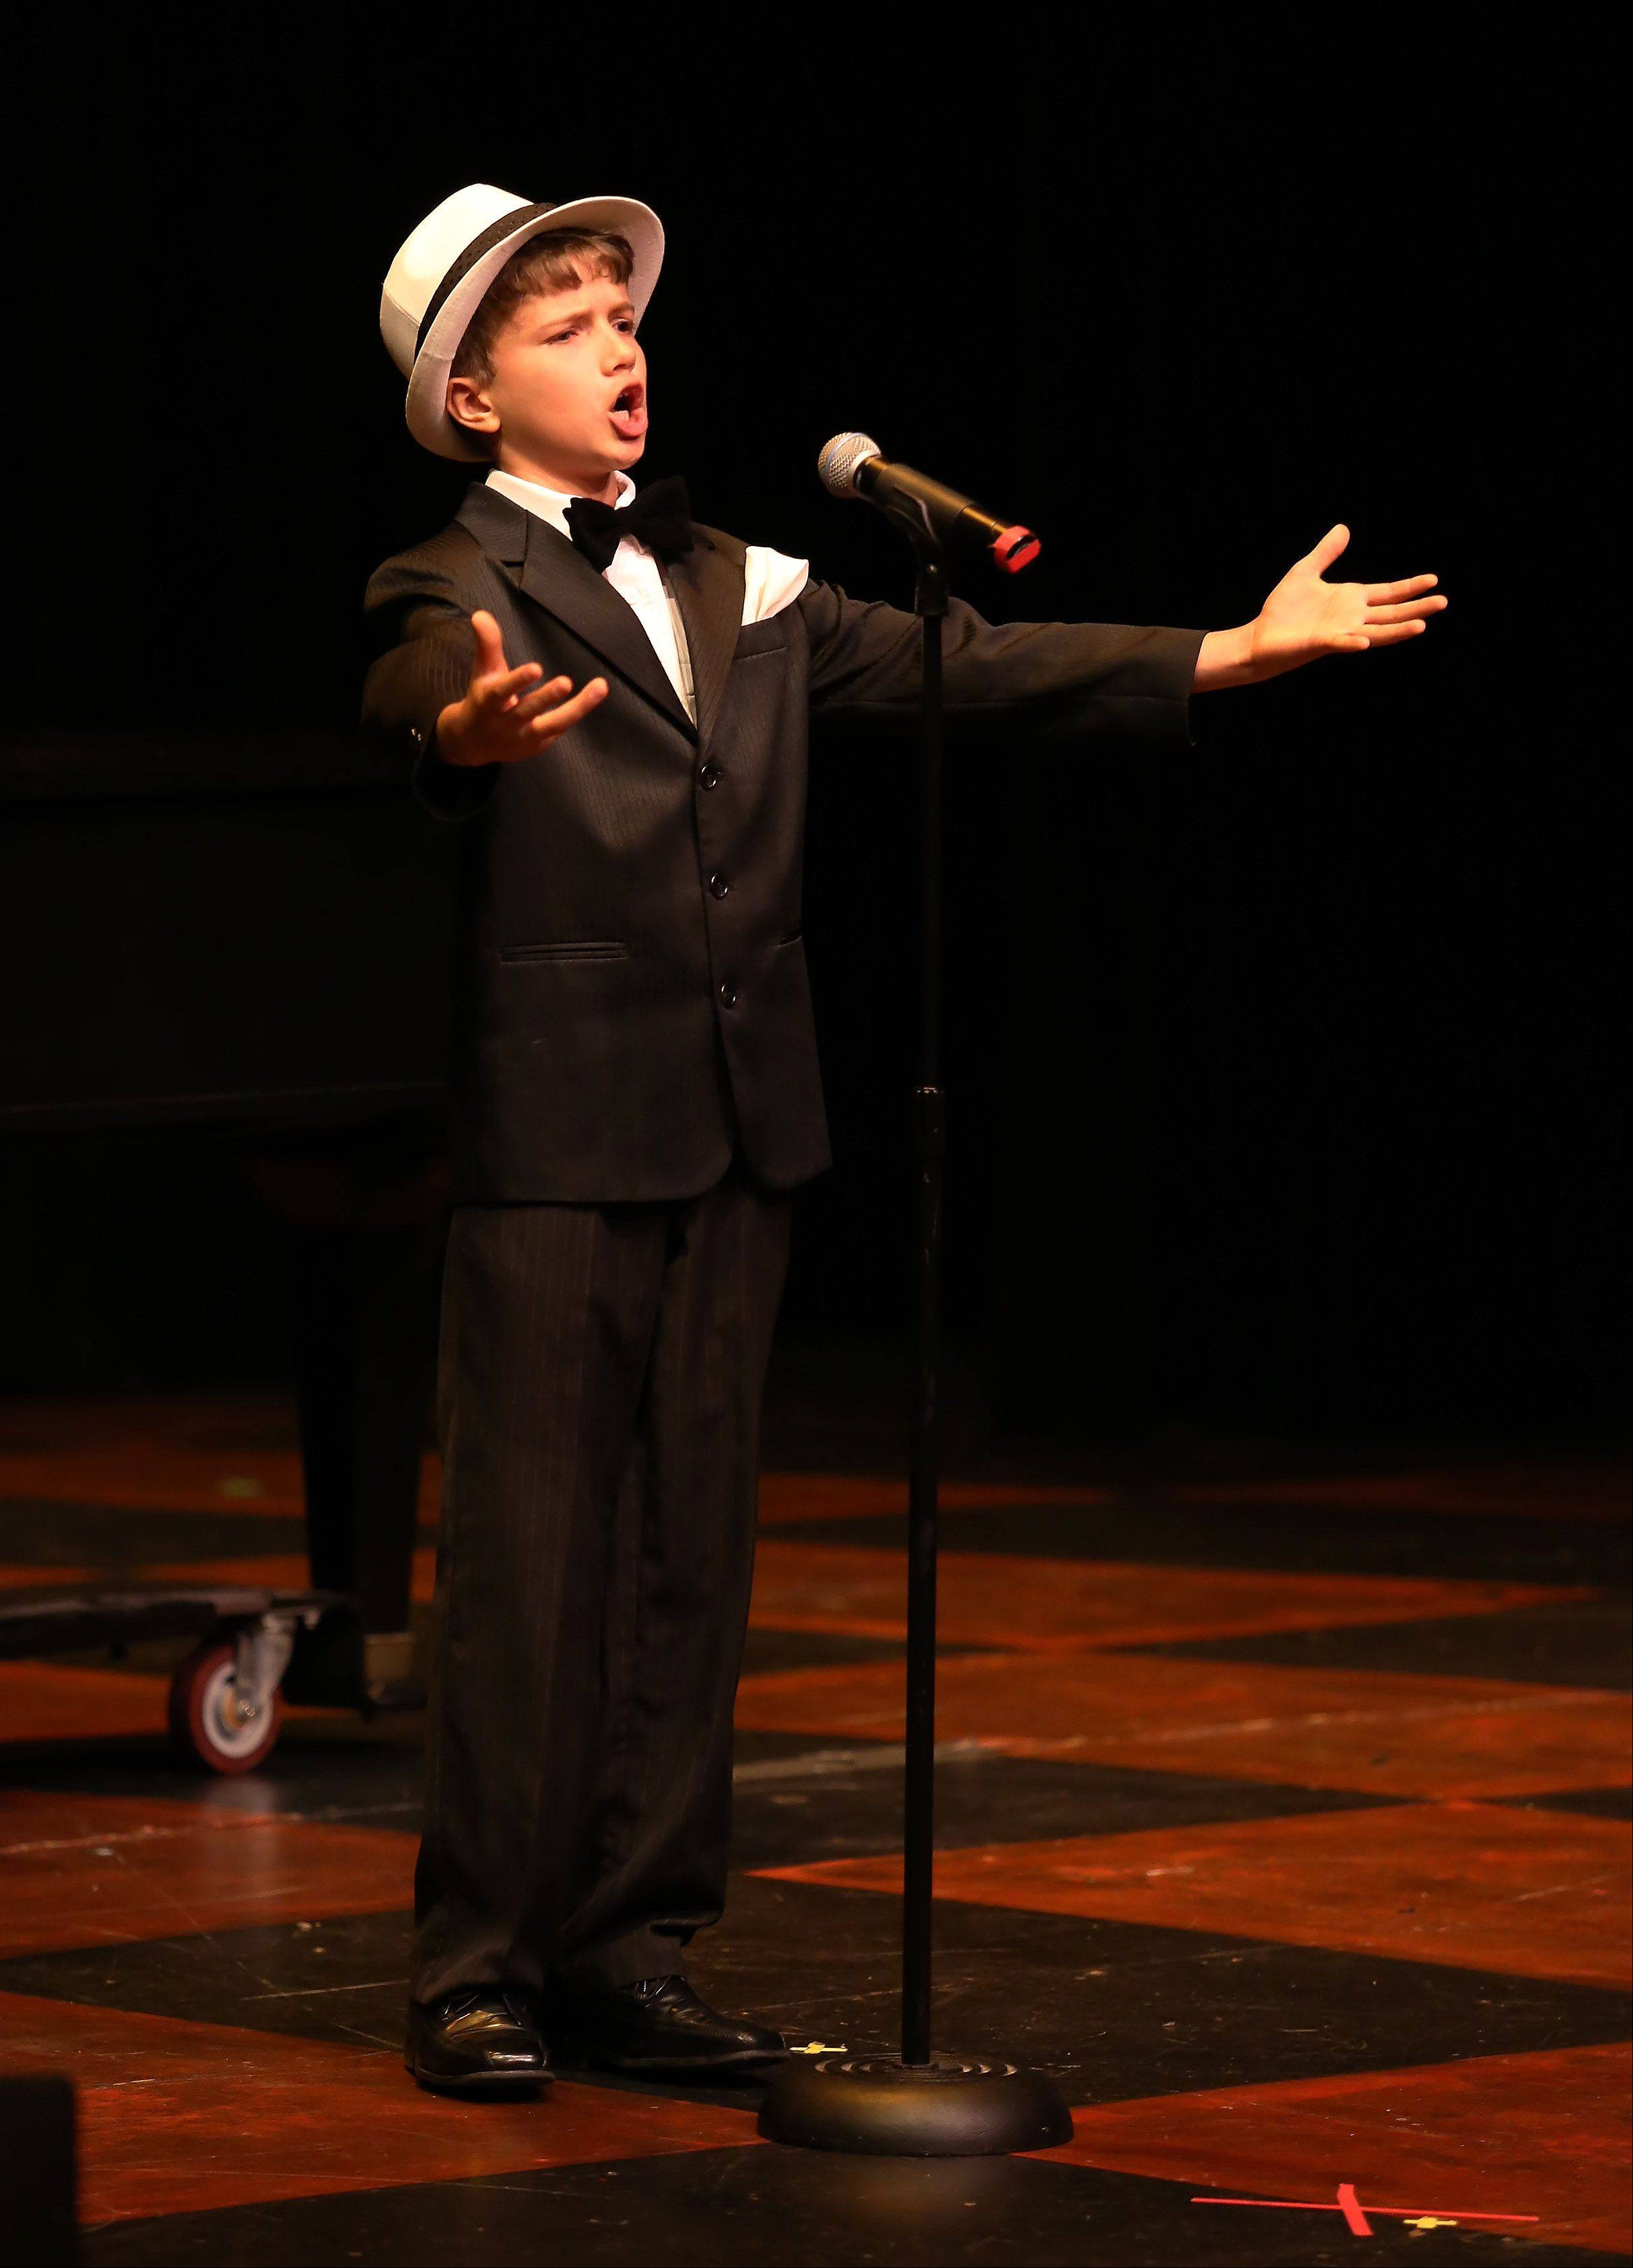 Sheridan Archbold, 11, of Yorkville, performs opera during the first round of finalists for the Suburban Chicago�s Got Talent competition Sunday night at the Metropolis Performing Arts Centre in Arlington Heights. The summer-long talent contest is presented by the Daily Herald and sponsored by the Arlington Heights Chamber of Commerce.